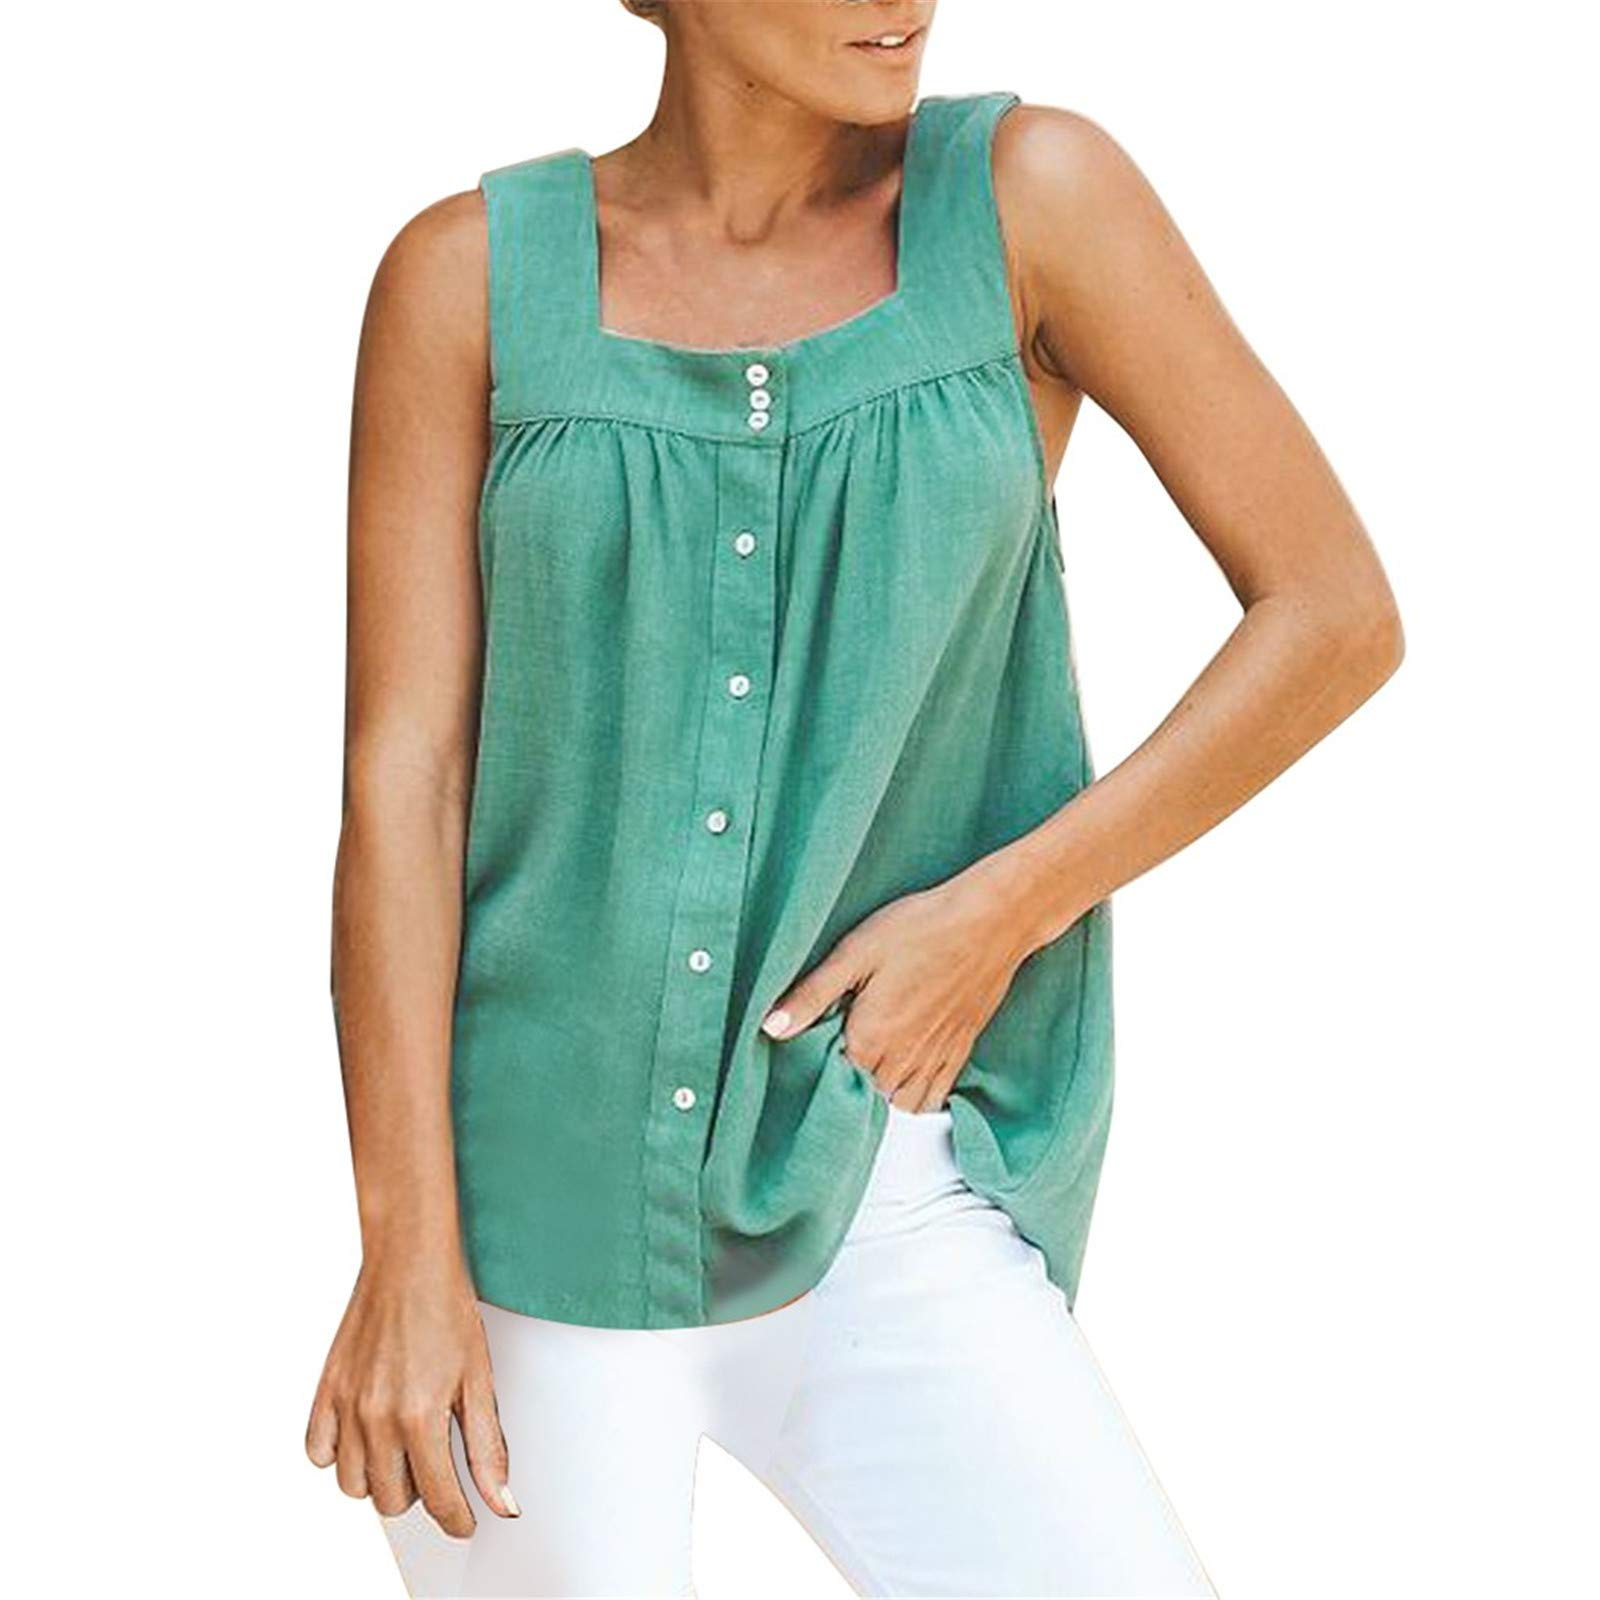 wodceeke Womens Tank Top,Summer Soild Button Pleated Sleeveless camisole Tops(Green,XL)